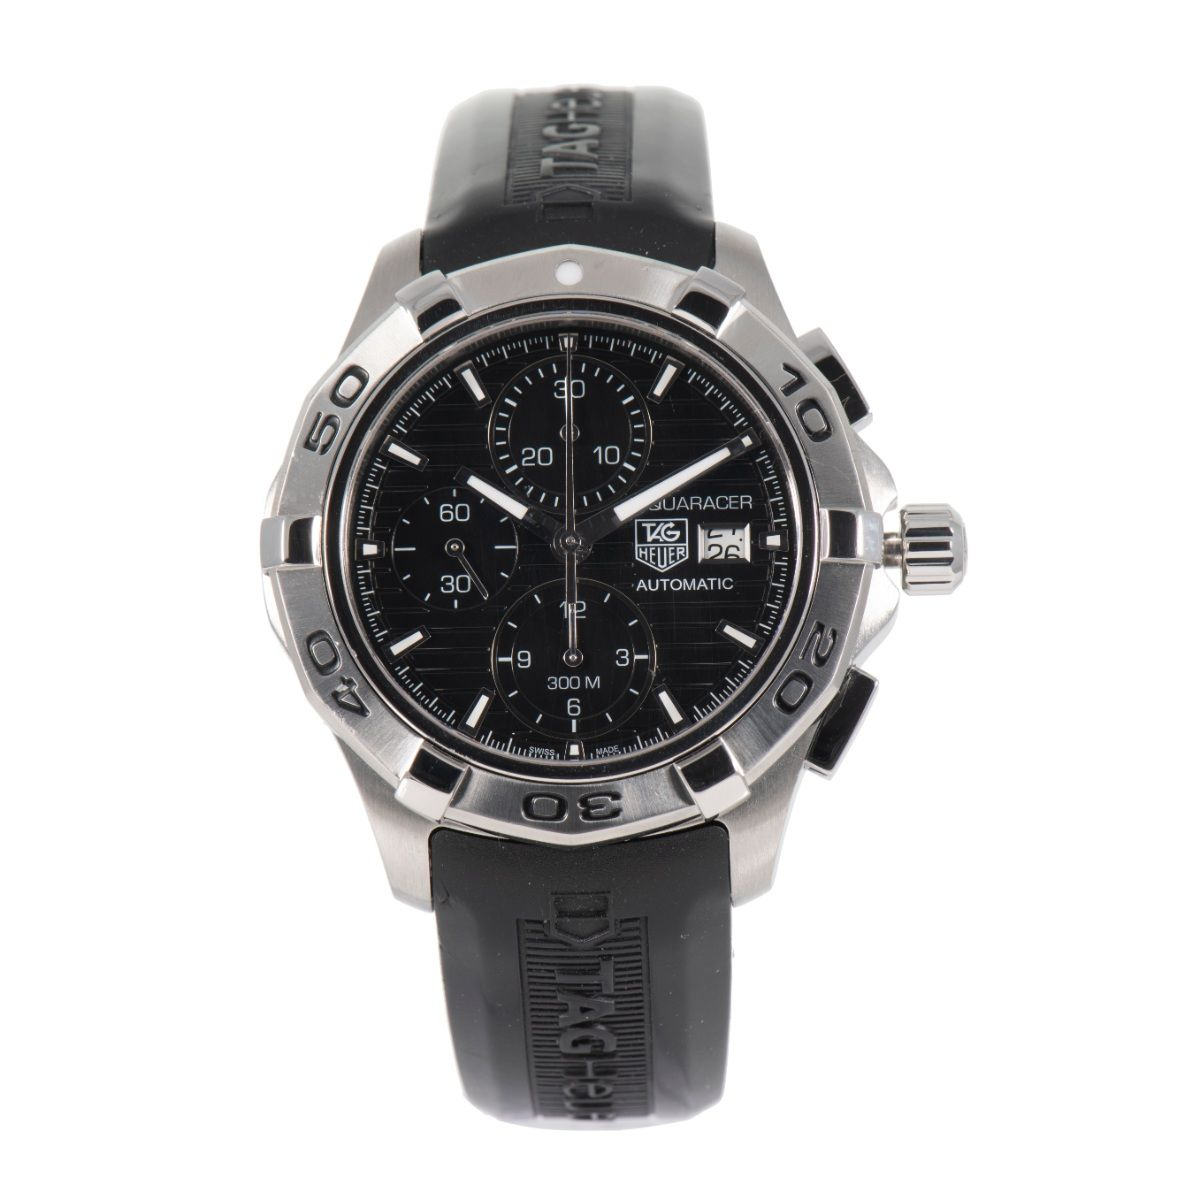 Tag Heuer Aquaracer Automatic Chronograph CAP2110 Black Dial 43mm Mens Watch